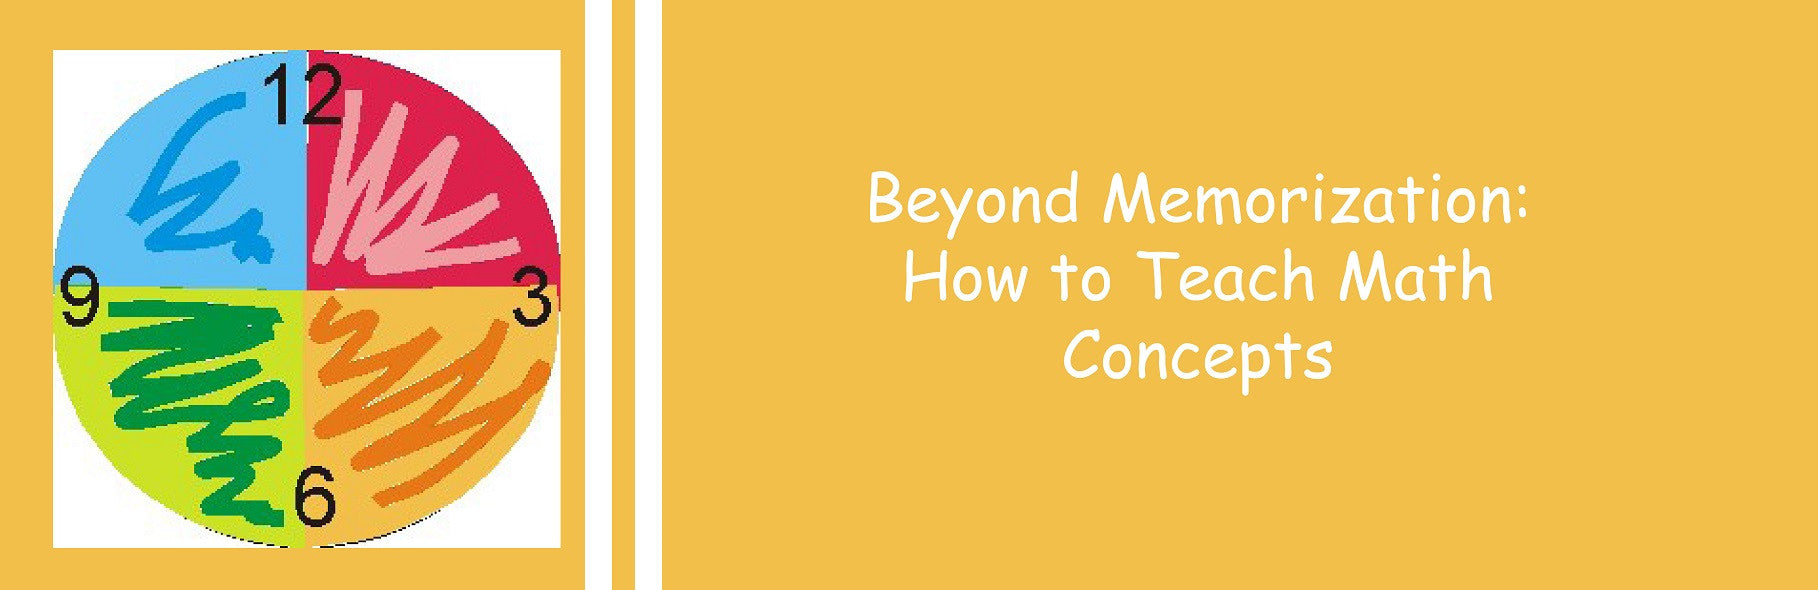 Beyond Memorization: How to Teach Math Concepts